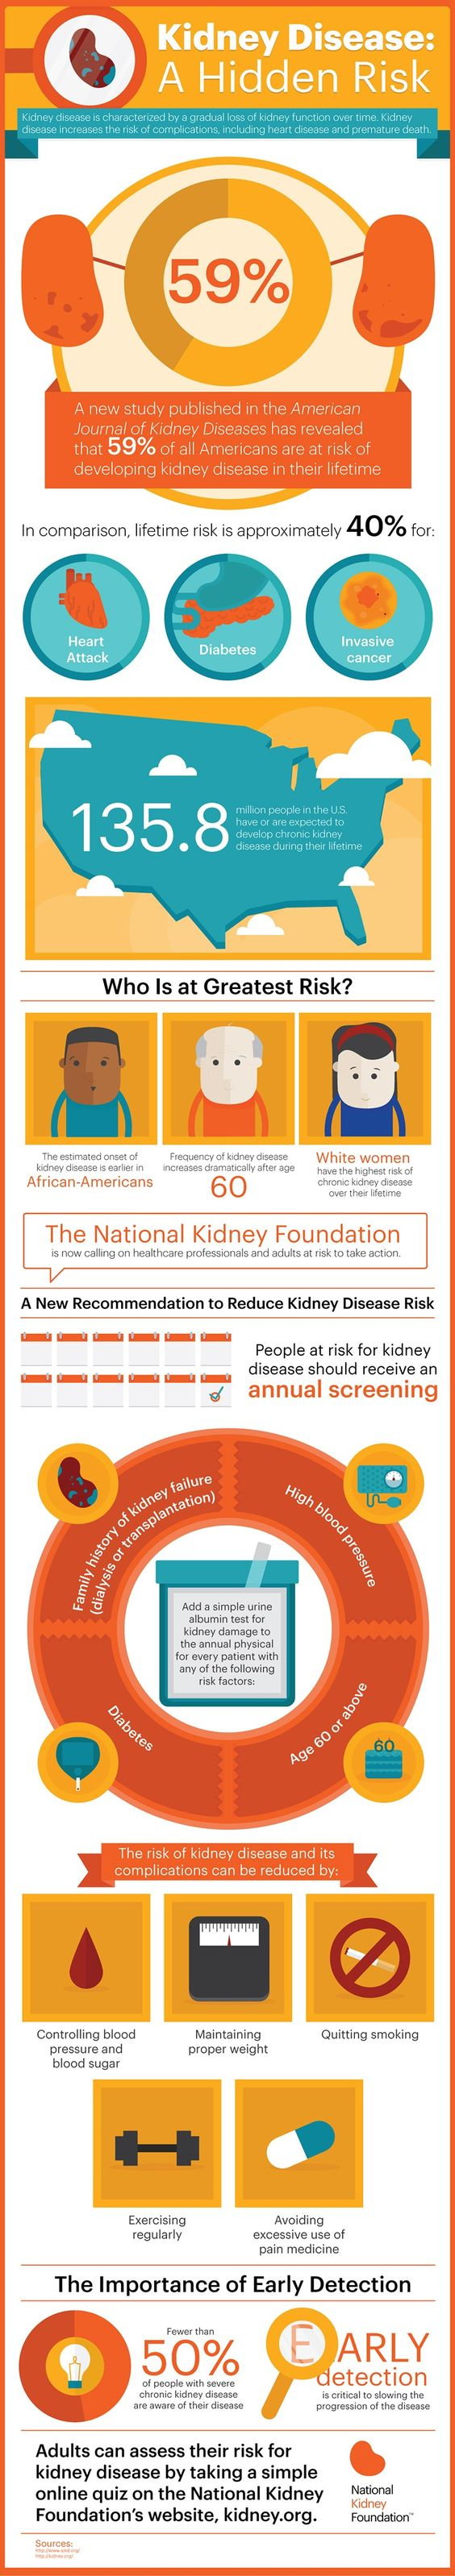 #Kidney Disease: A Hidden Risk. Nearly 6 of 10 Americans will develop kidney disease in their lifetime, according to a new analysis published in the American Journal of Kidney Disease.